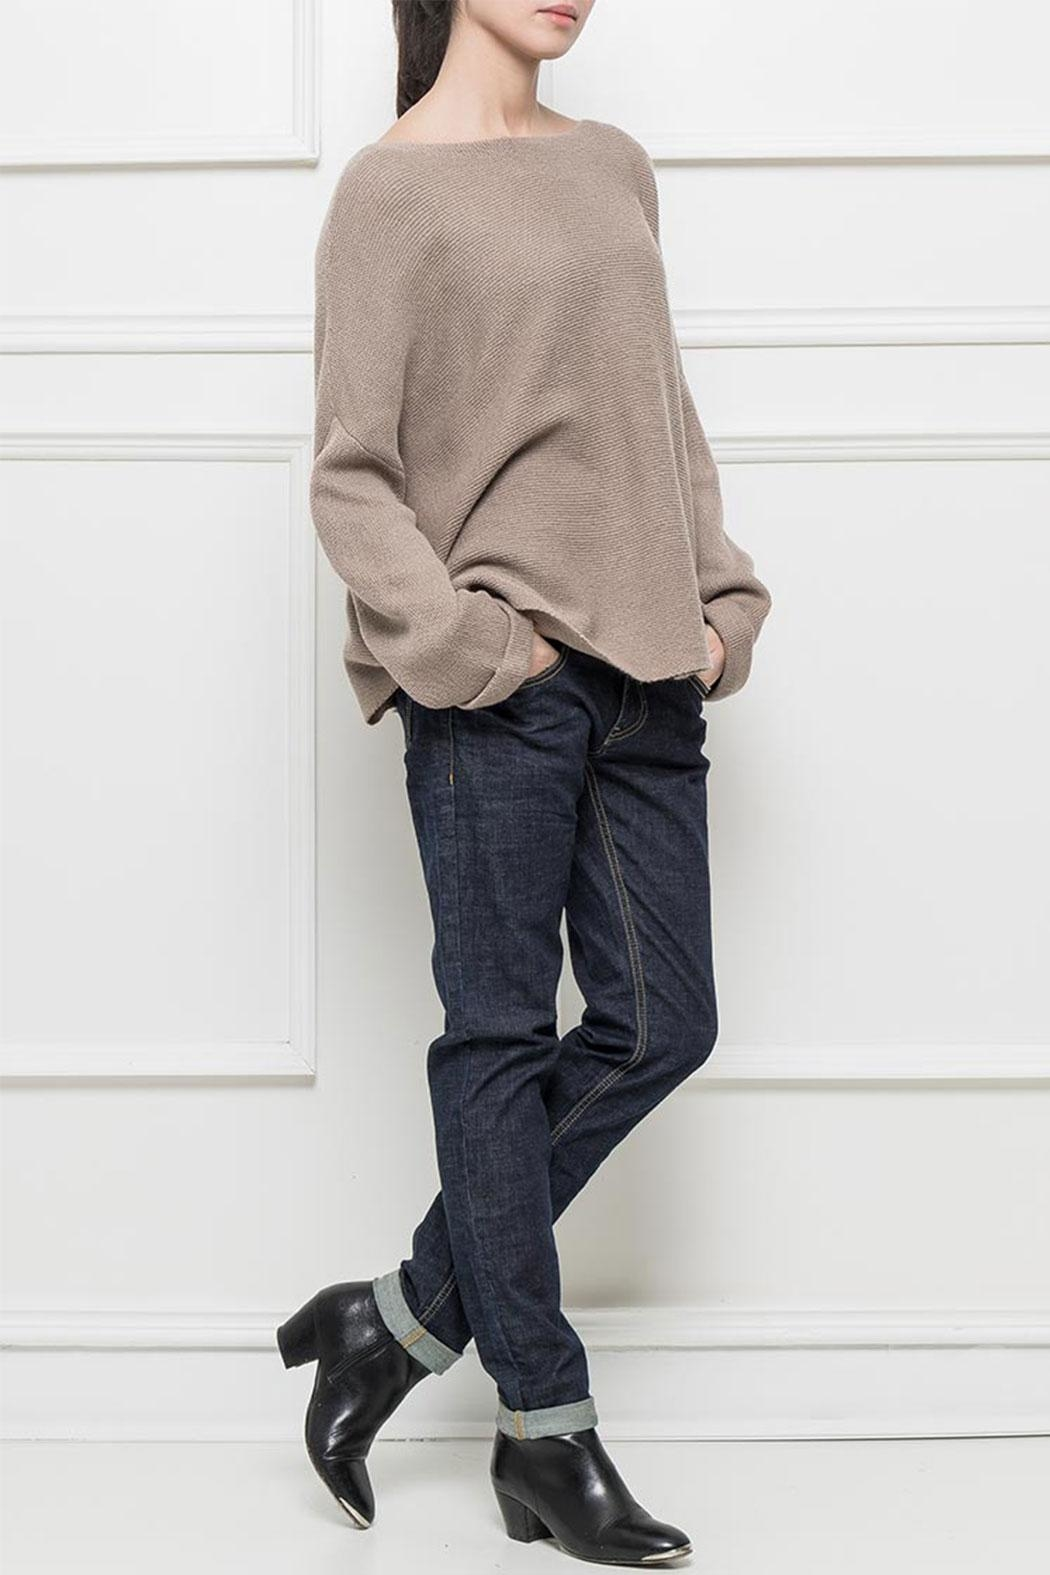 RYUJEE Placide Oversize Sweater - Front Cropped Image